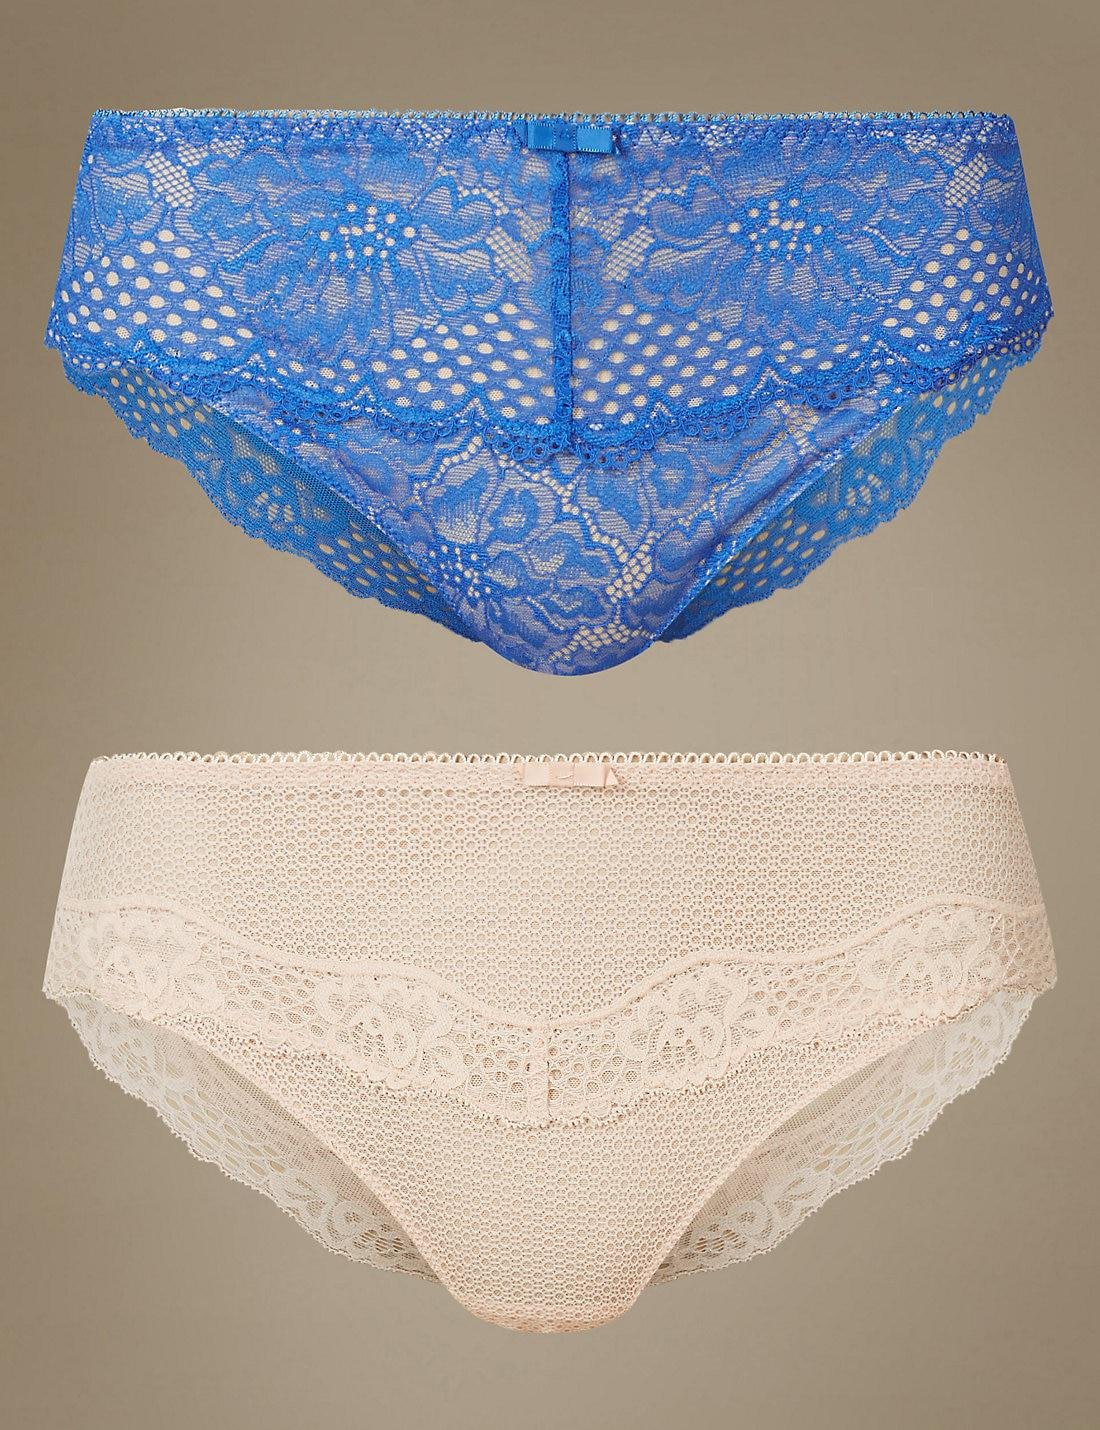 2d8113b13467 Lyst - Marks & Spencer 2 Pack Textured & Lace High Leg Knickers in Blue